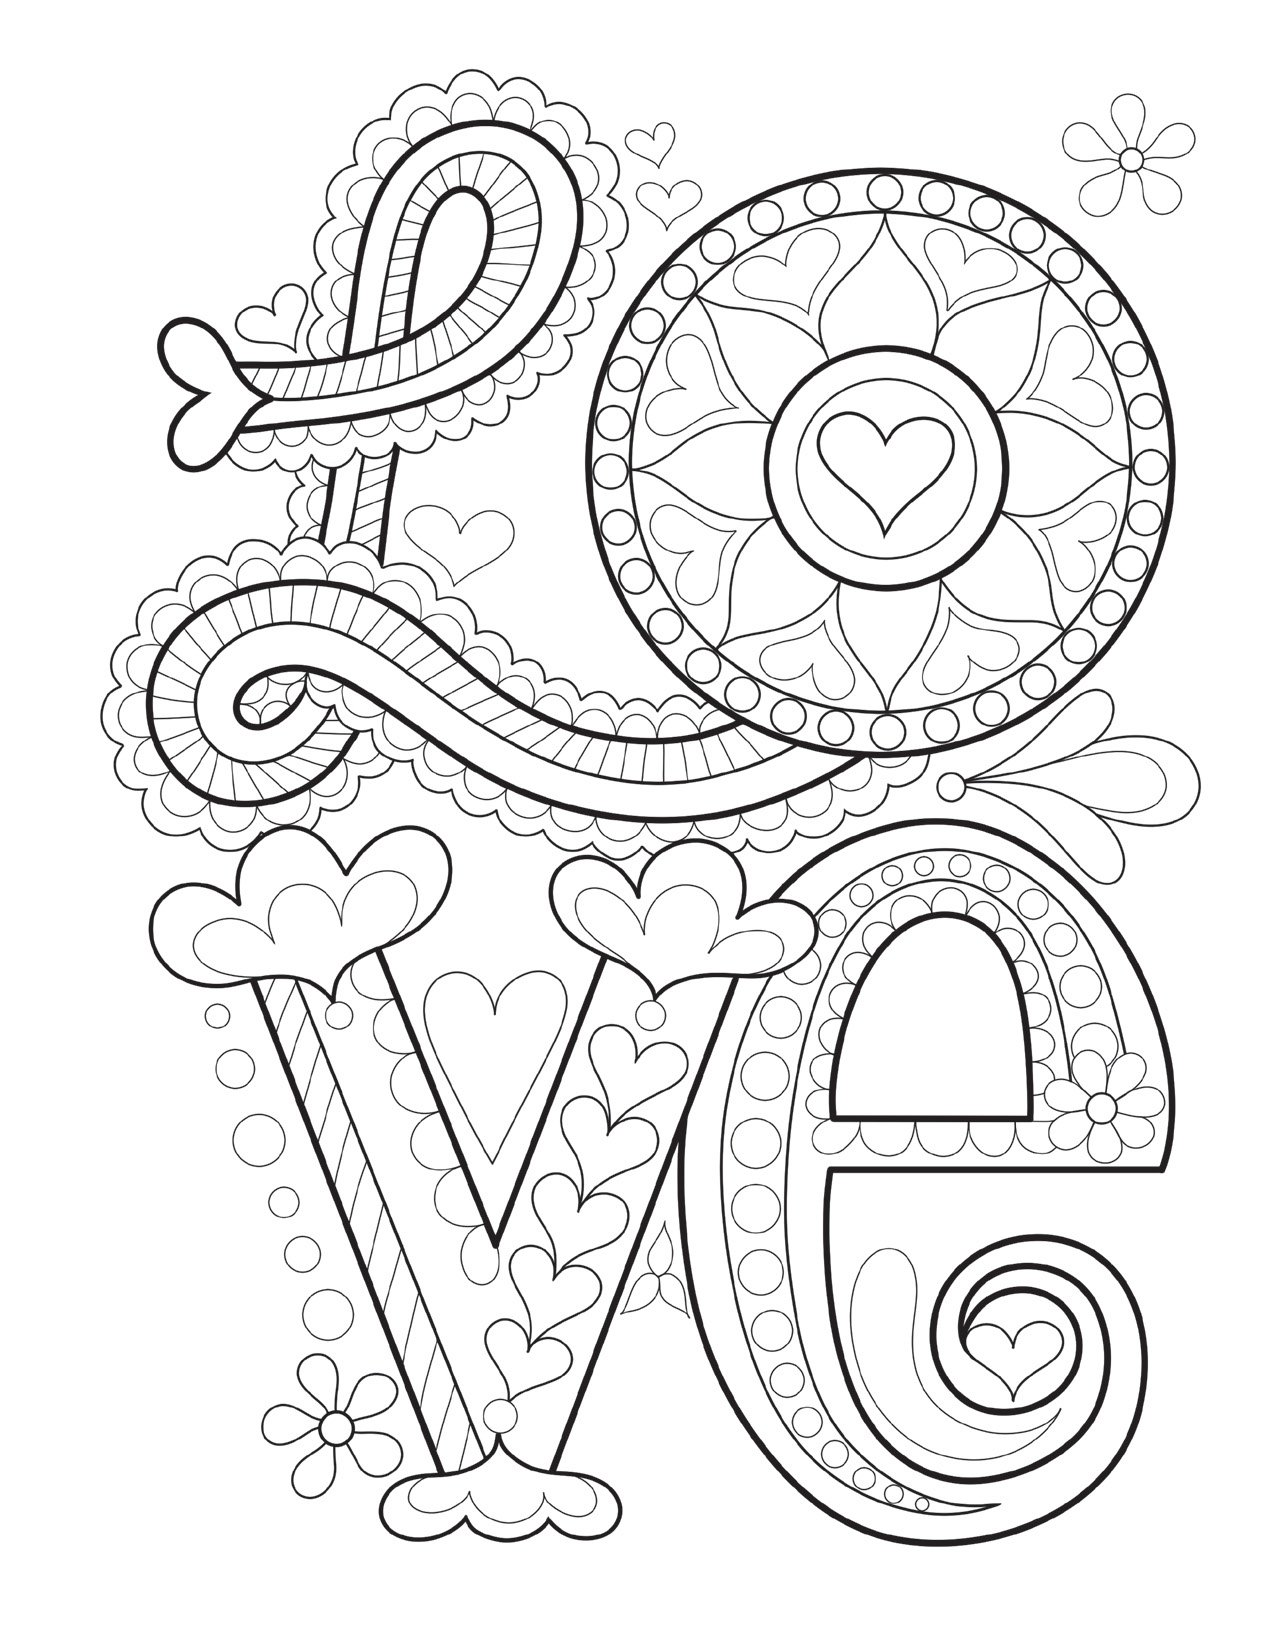 Peace Love Coloring Book Is Fun Design Originals 30 Far Out 60s Inspired Beginner Friendly Creative Art Activities From Thaneeya McArdle On